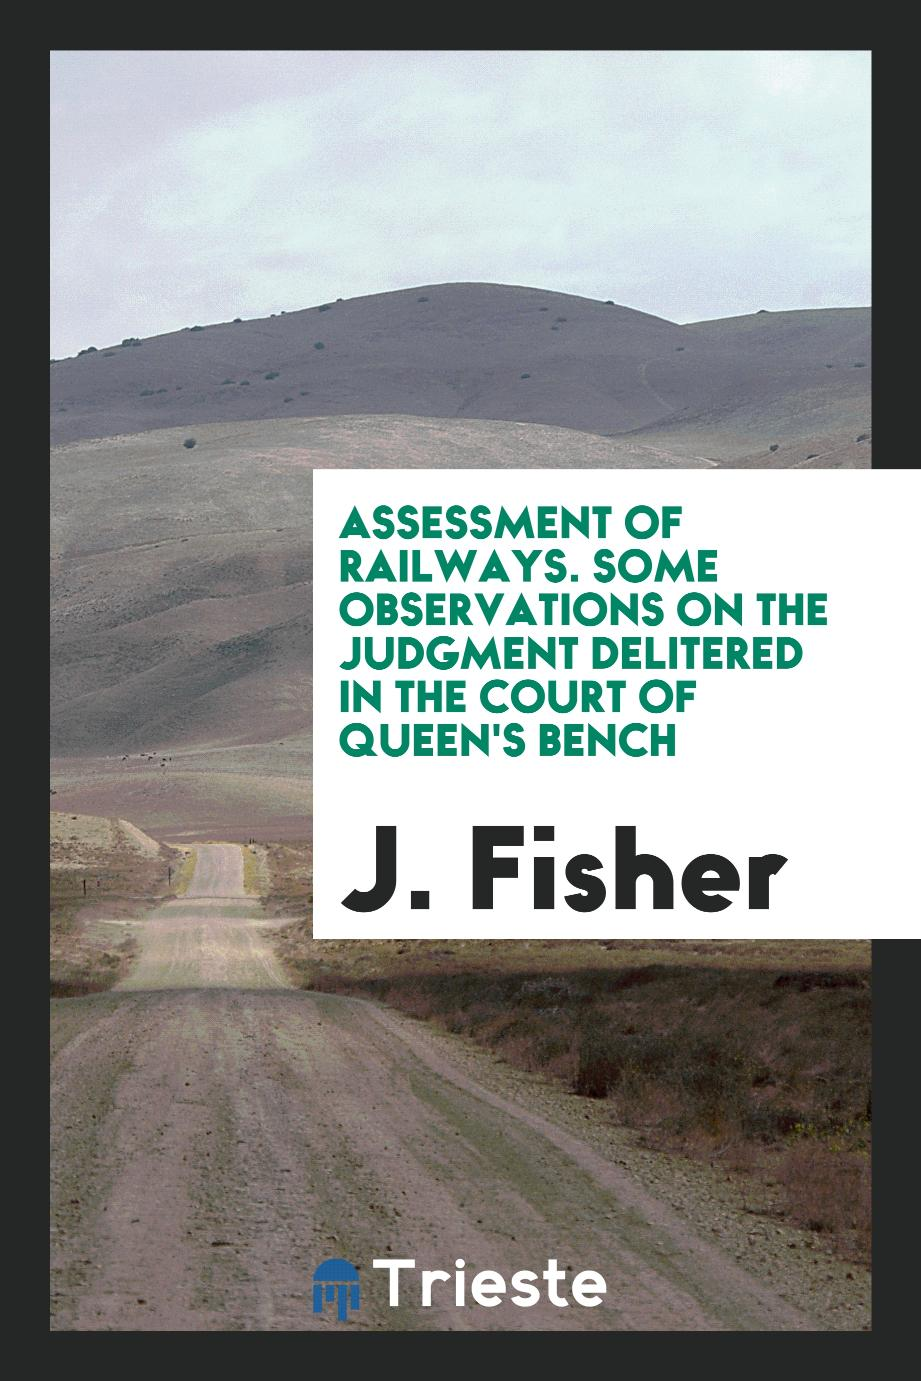 Assessment of Railways. Some observations on the Judgment delitered in the court of queen's bench